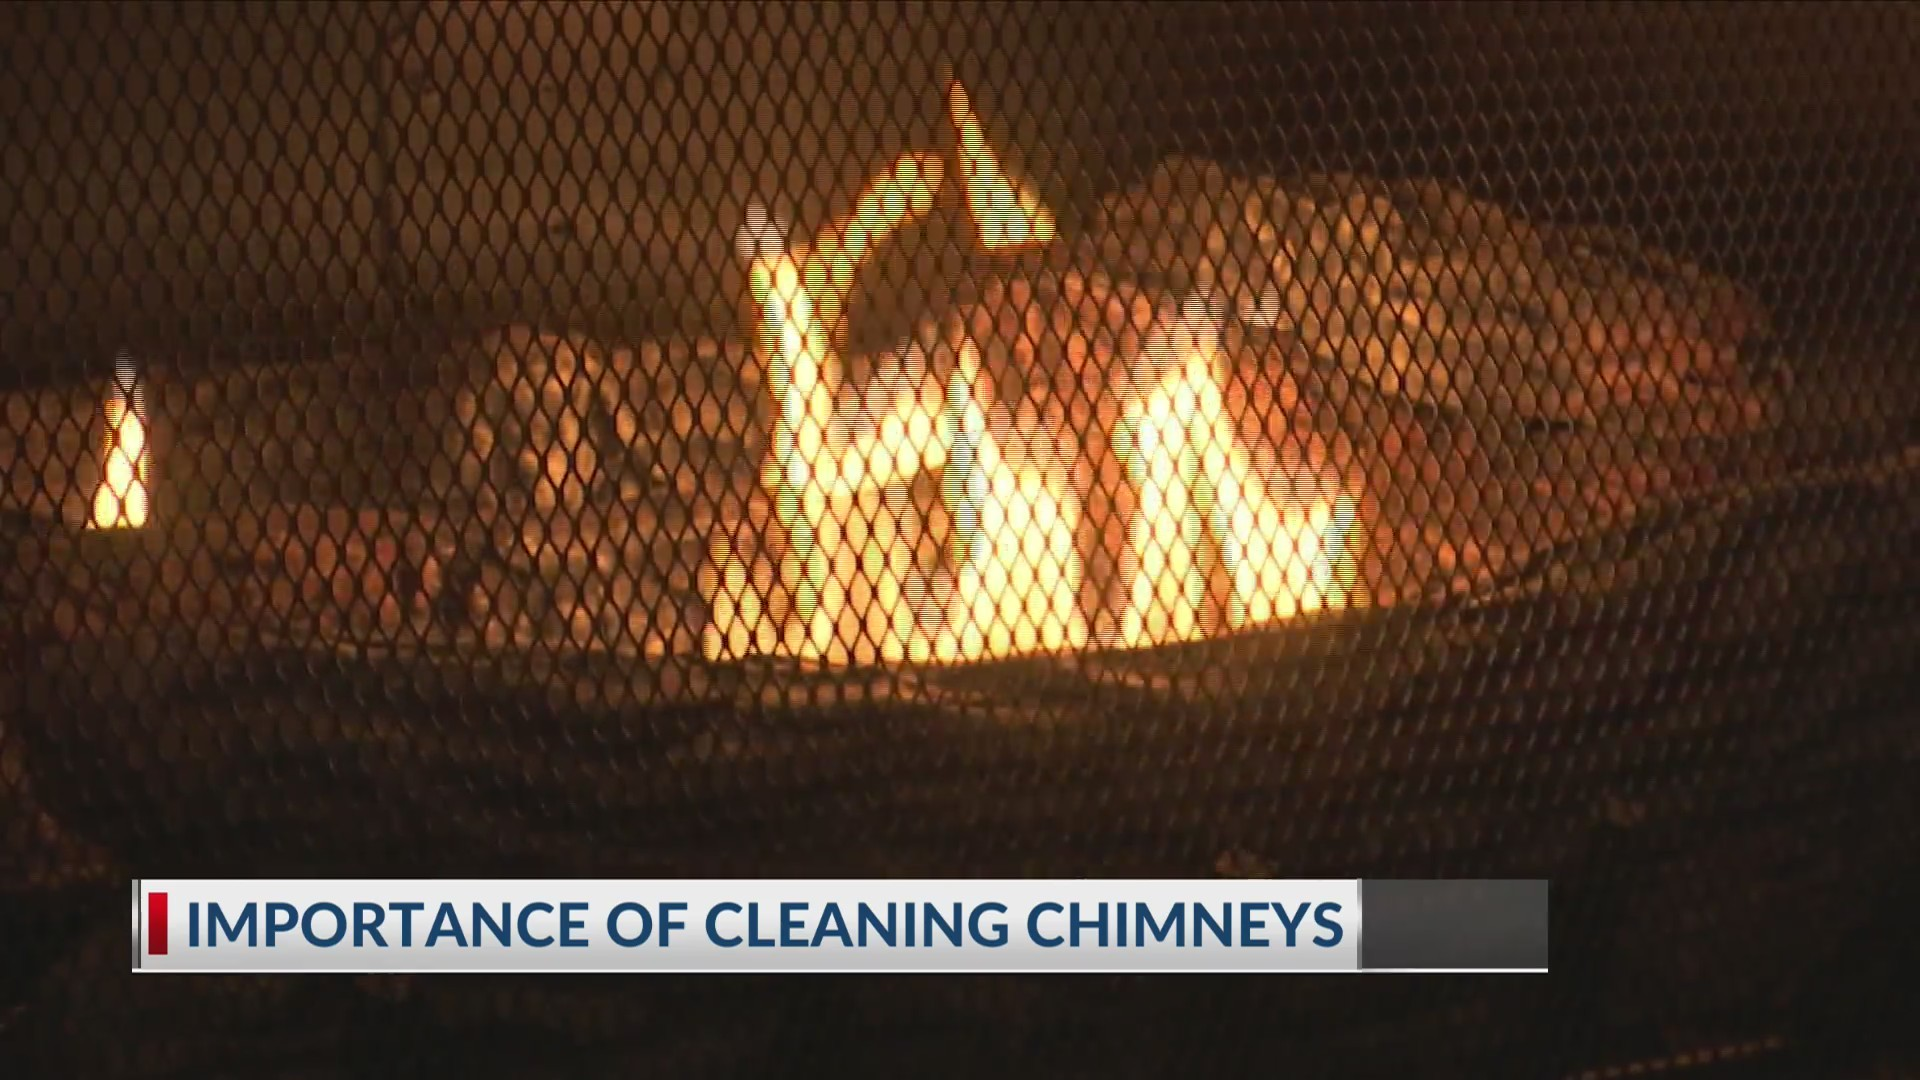 Chimney_safety_tips_9_20190307004859